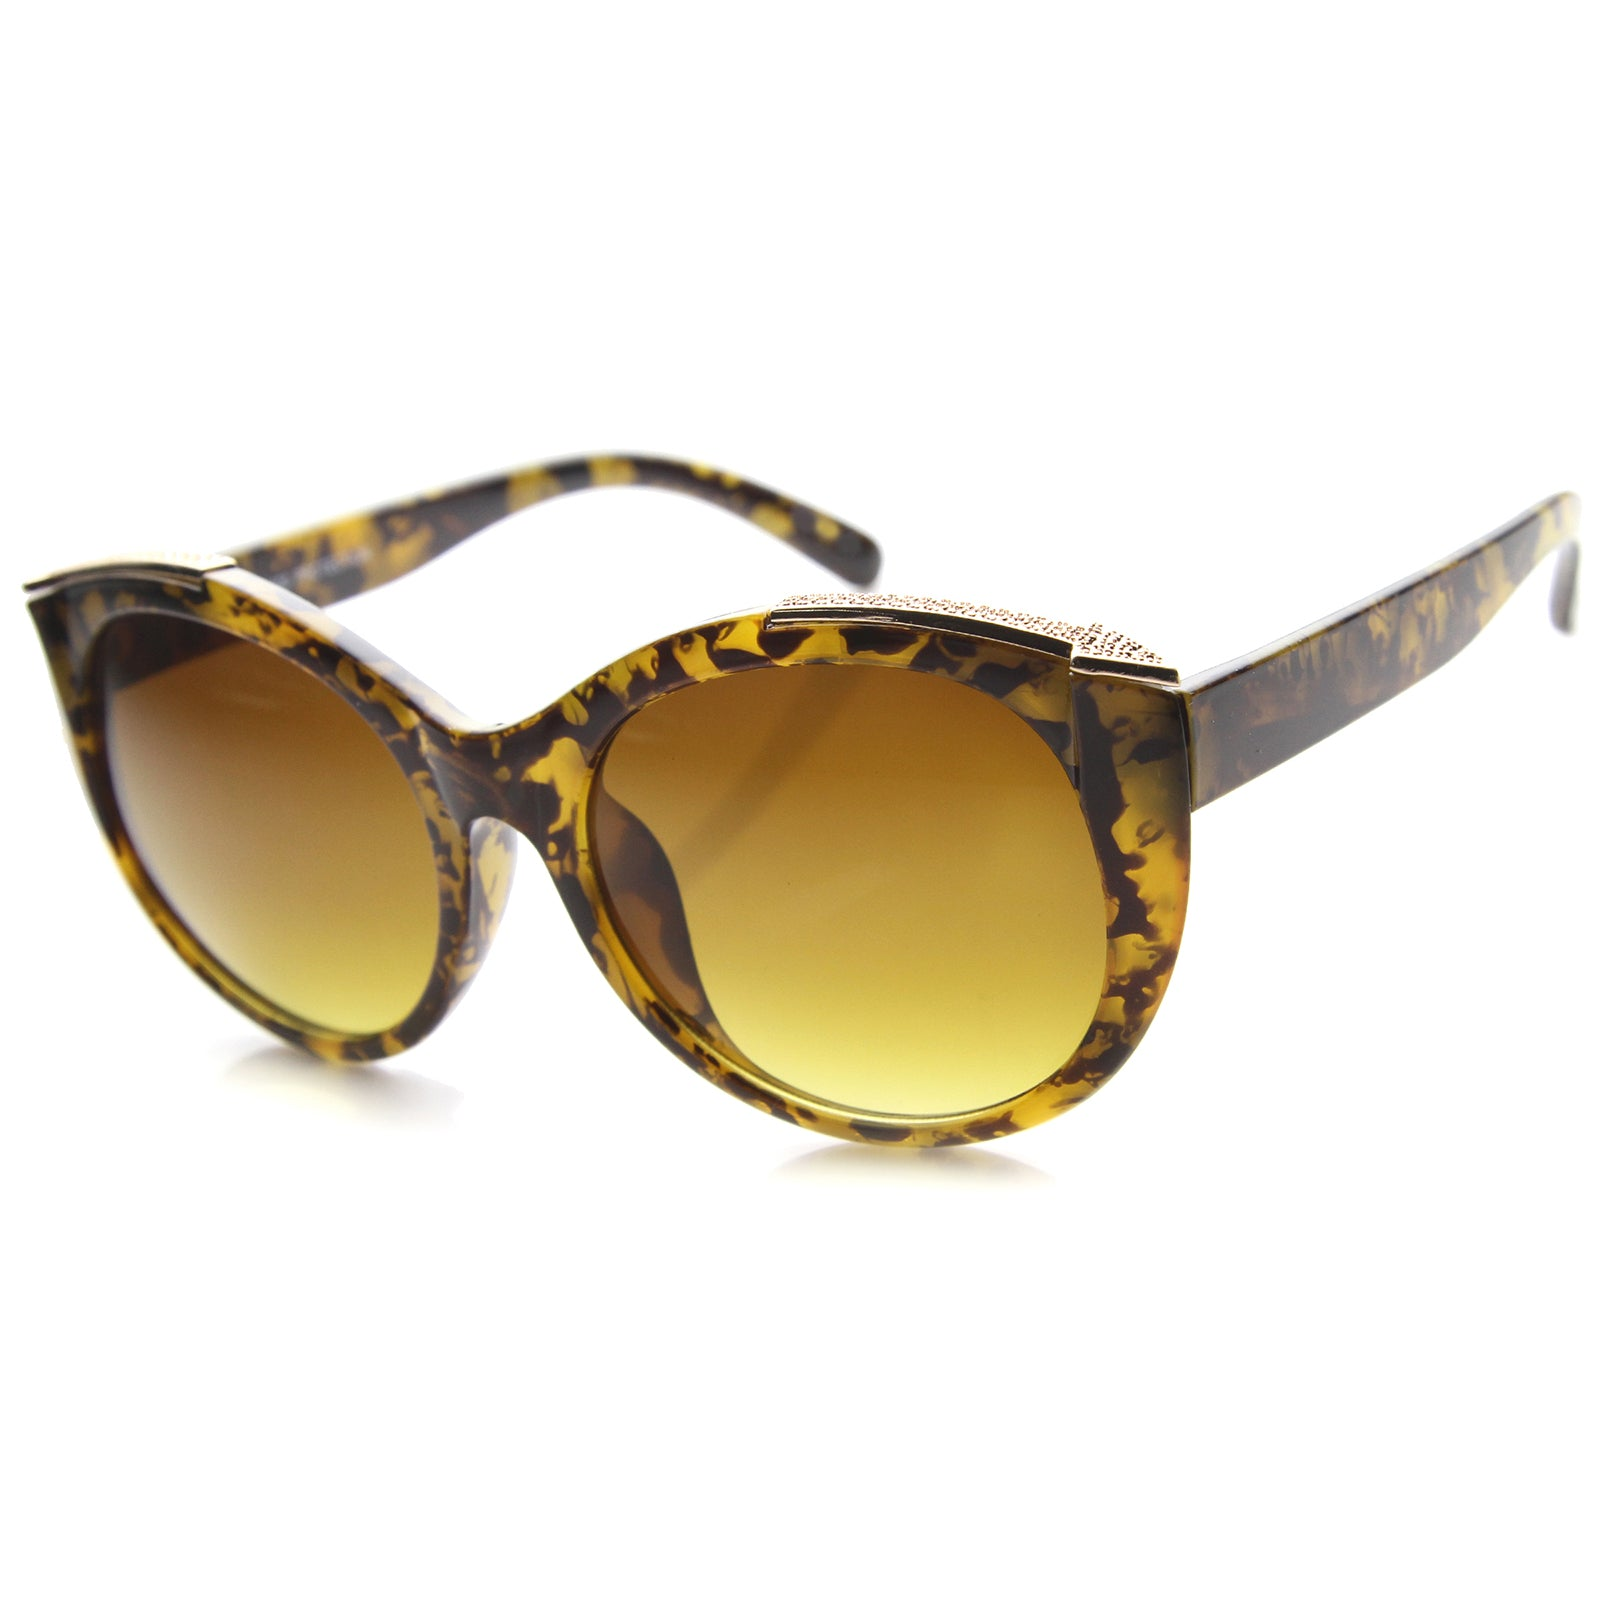 Womens Cat Eye Sunglasses With UV400 Protected Gradient Lens - sunglass.la - 5